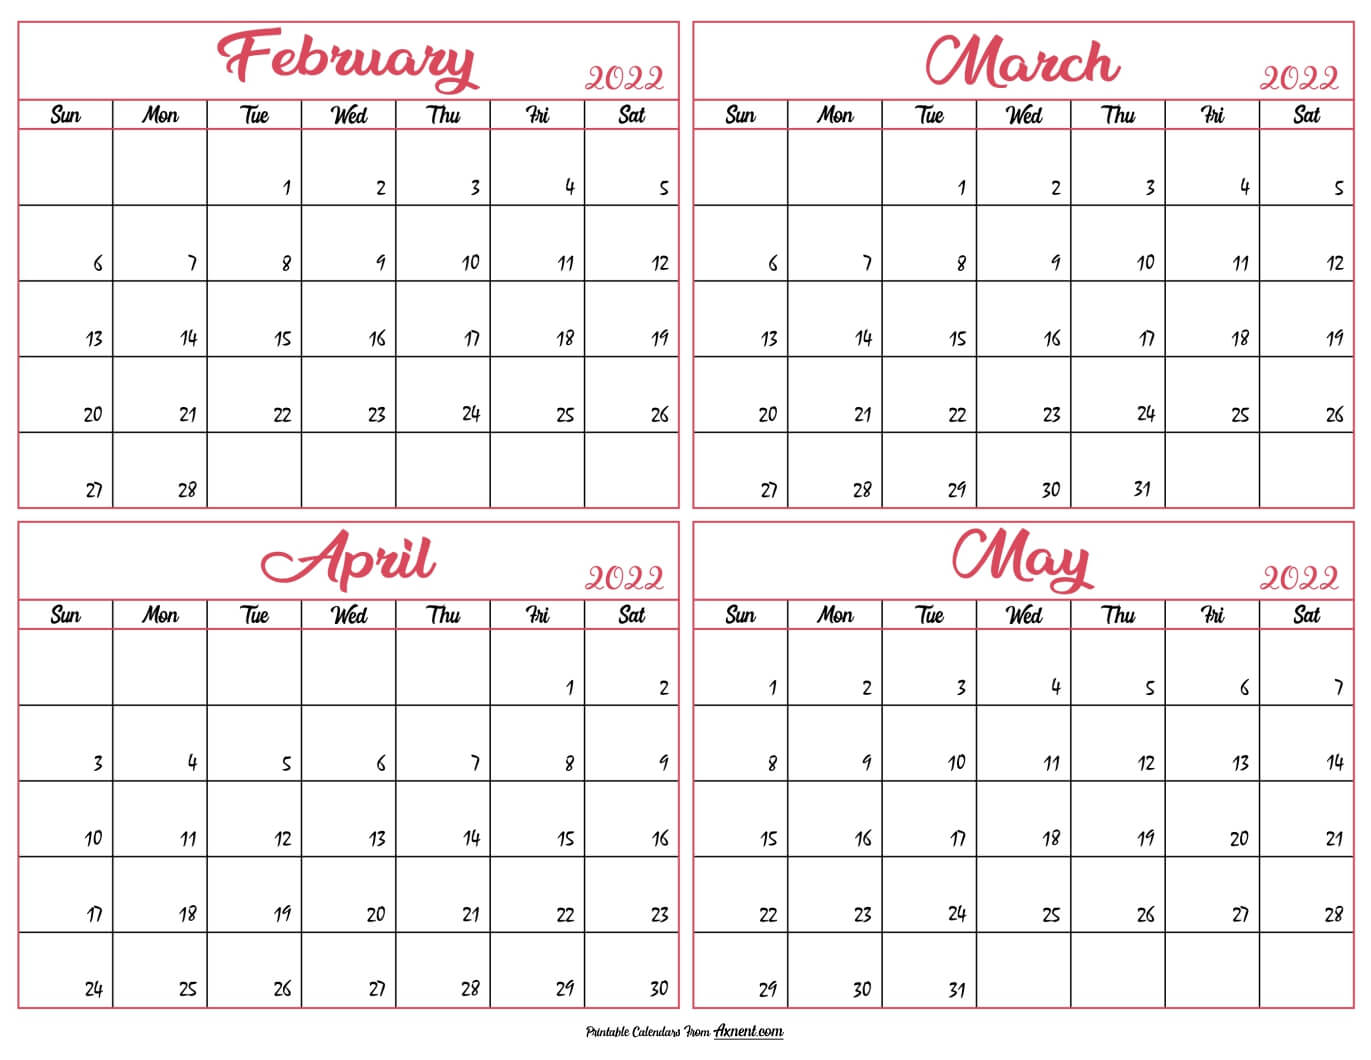 February to May Calendar 2022